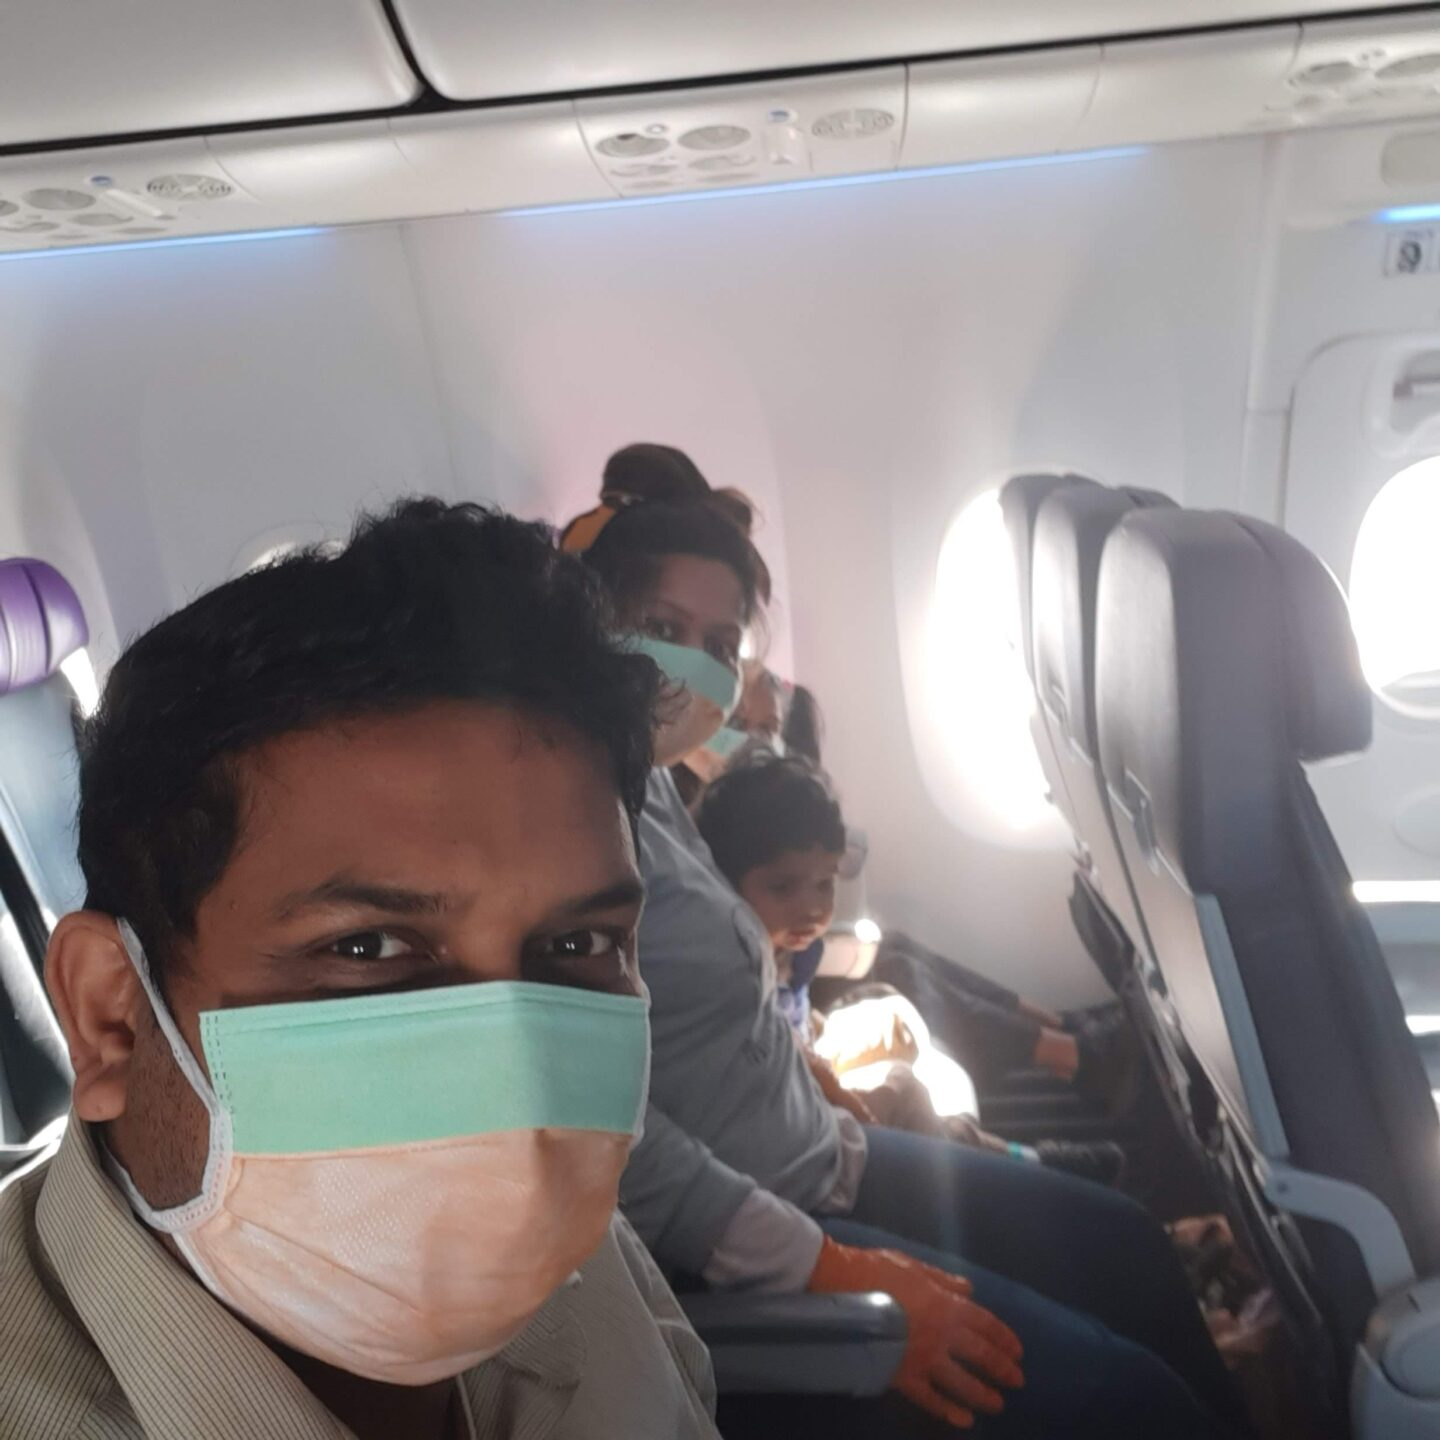 A man in a mask on an aeroplane with his family in the background also in masks.